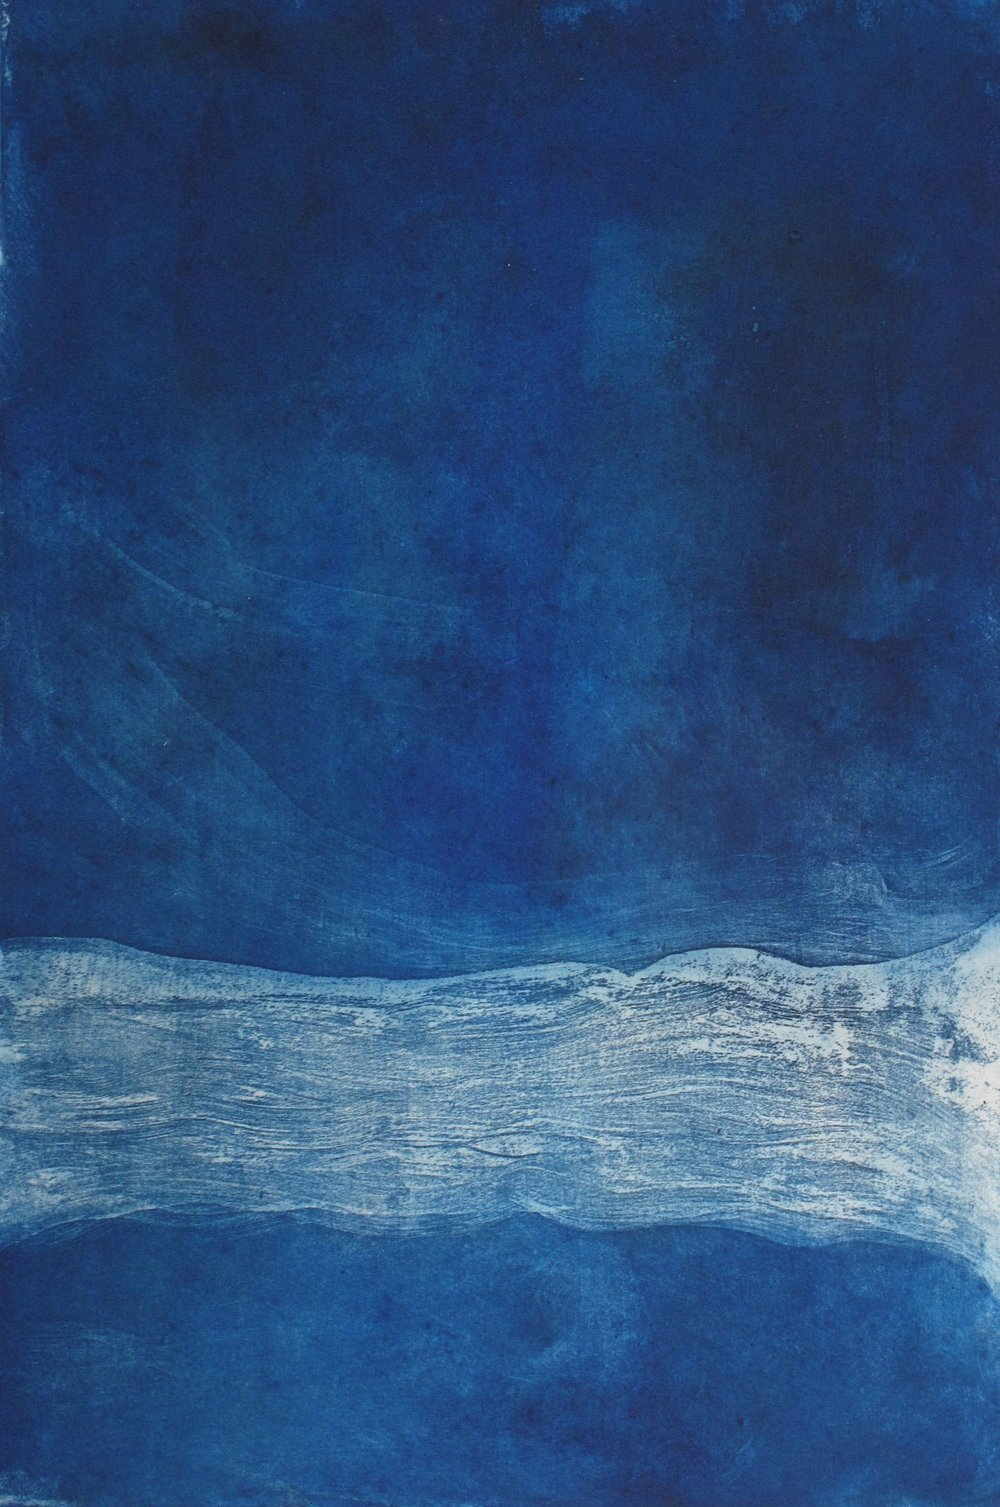 Blue Suite III  Etching by Gina McDonald